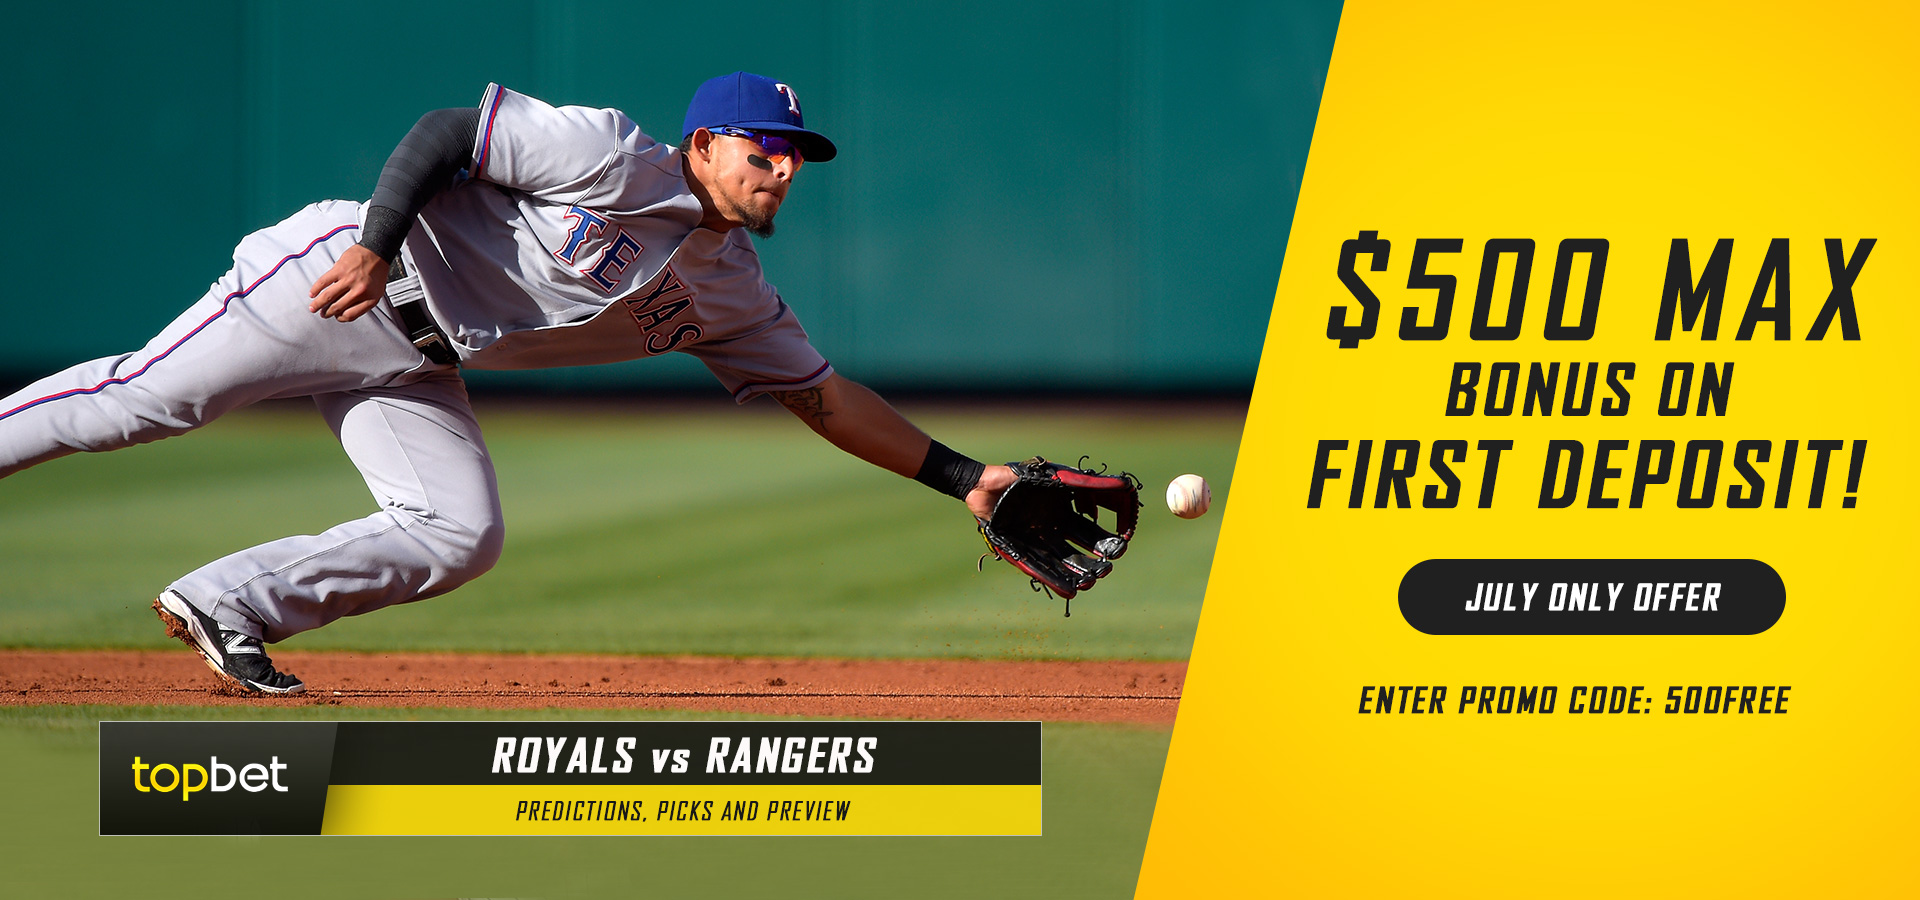 picks and parlays soccer mlb odds tonight